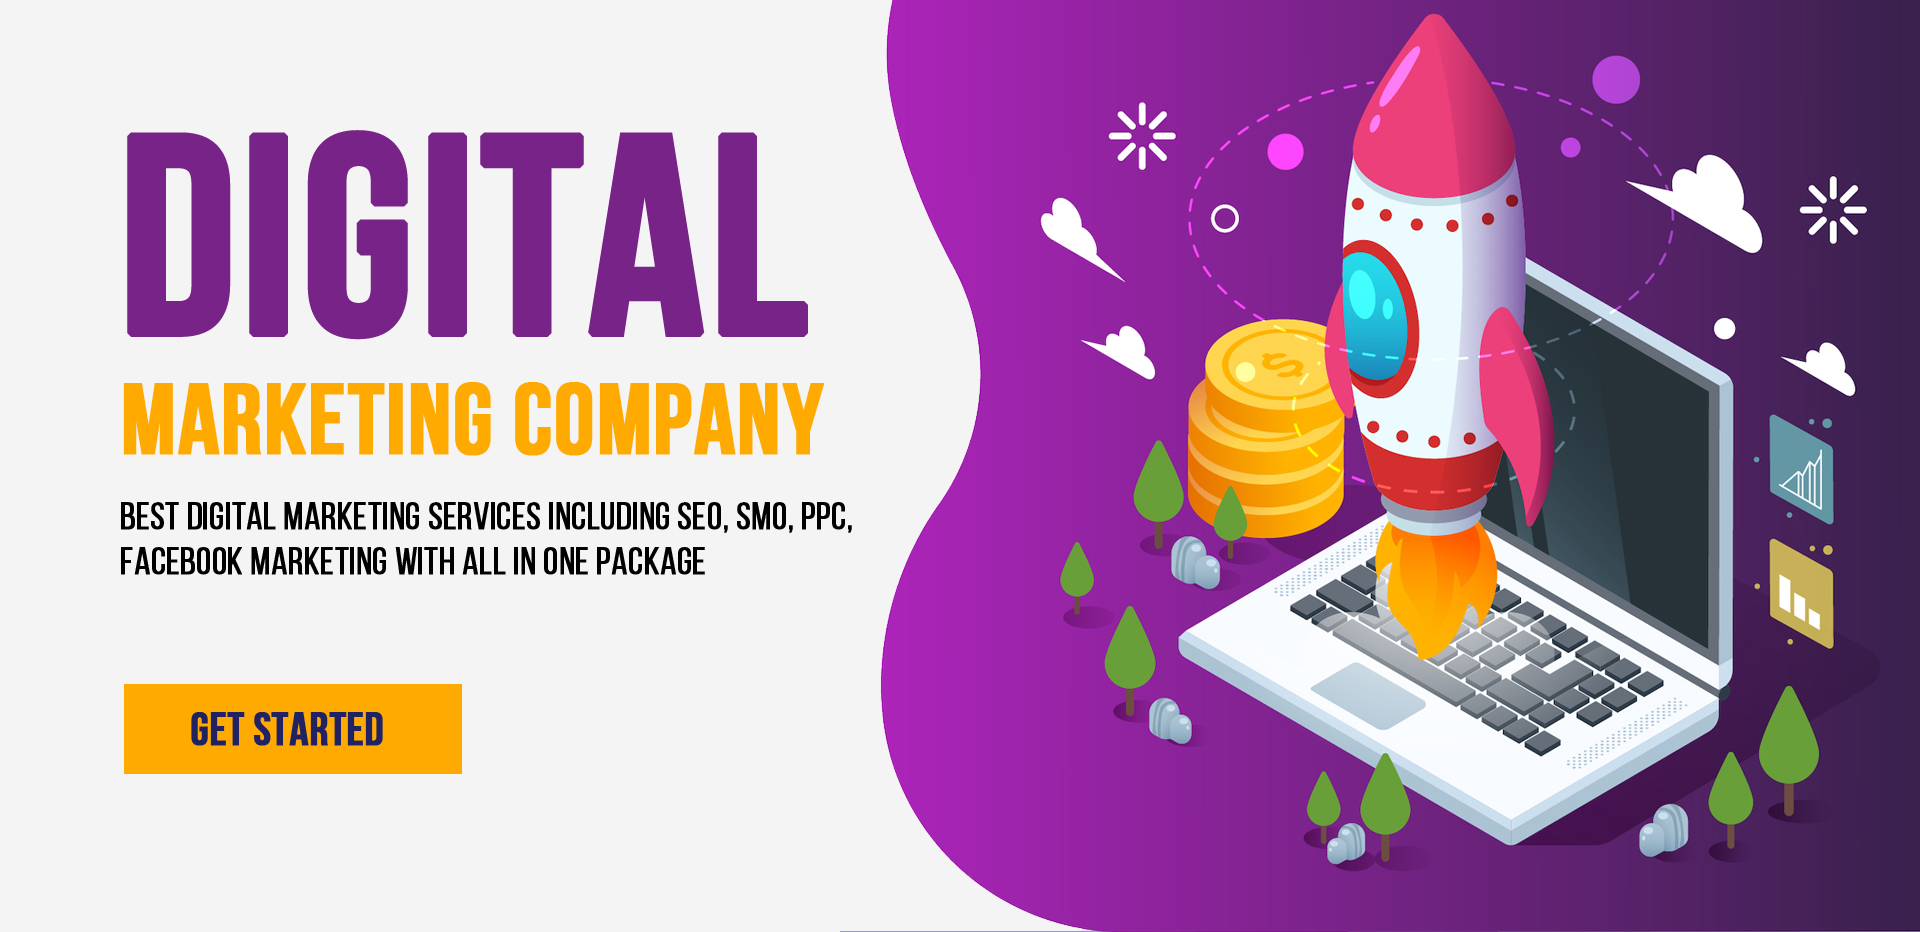 digital marketing services in greater noida delhi-ncr india